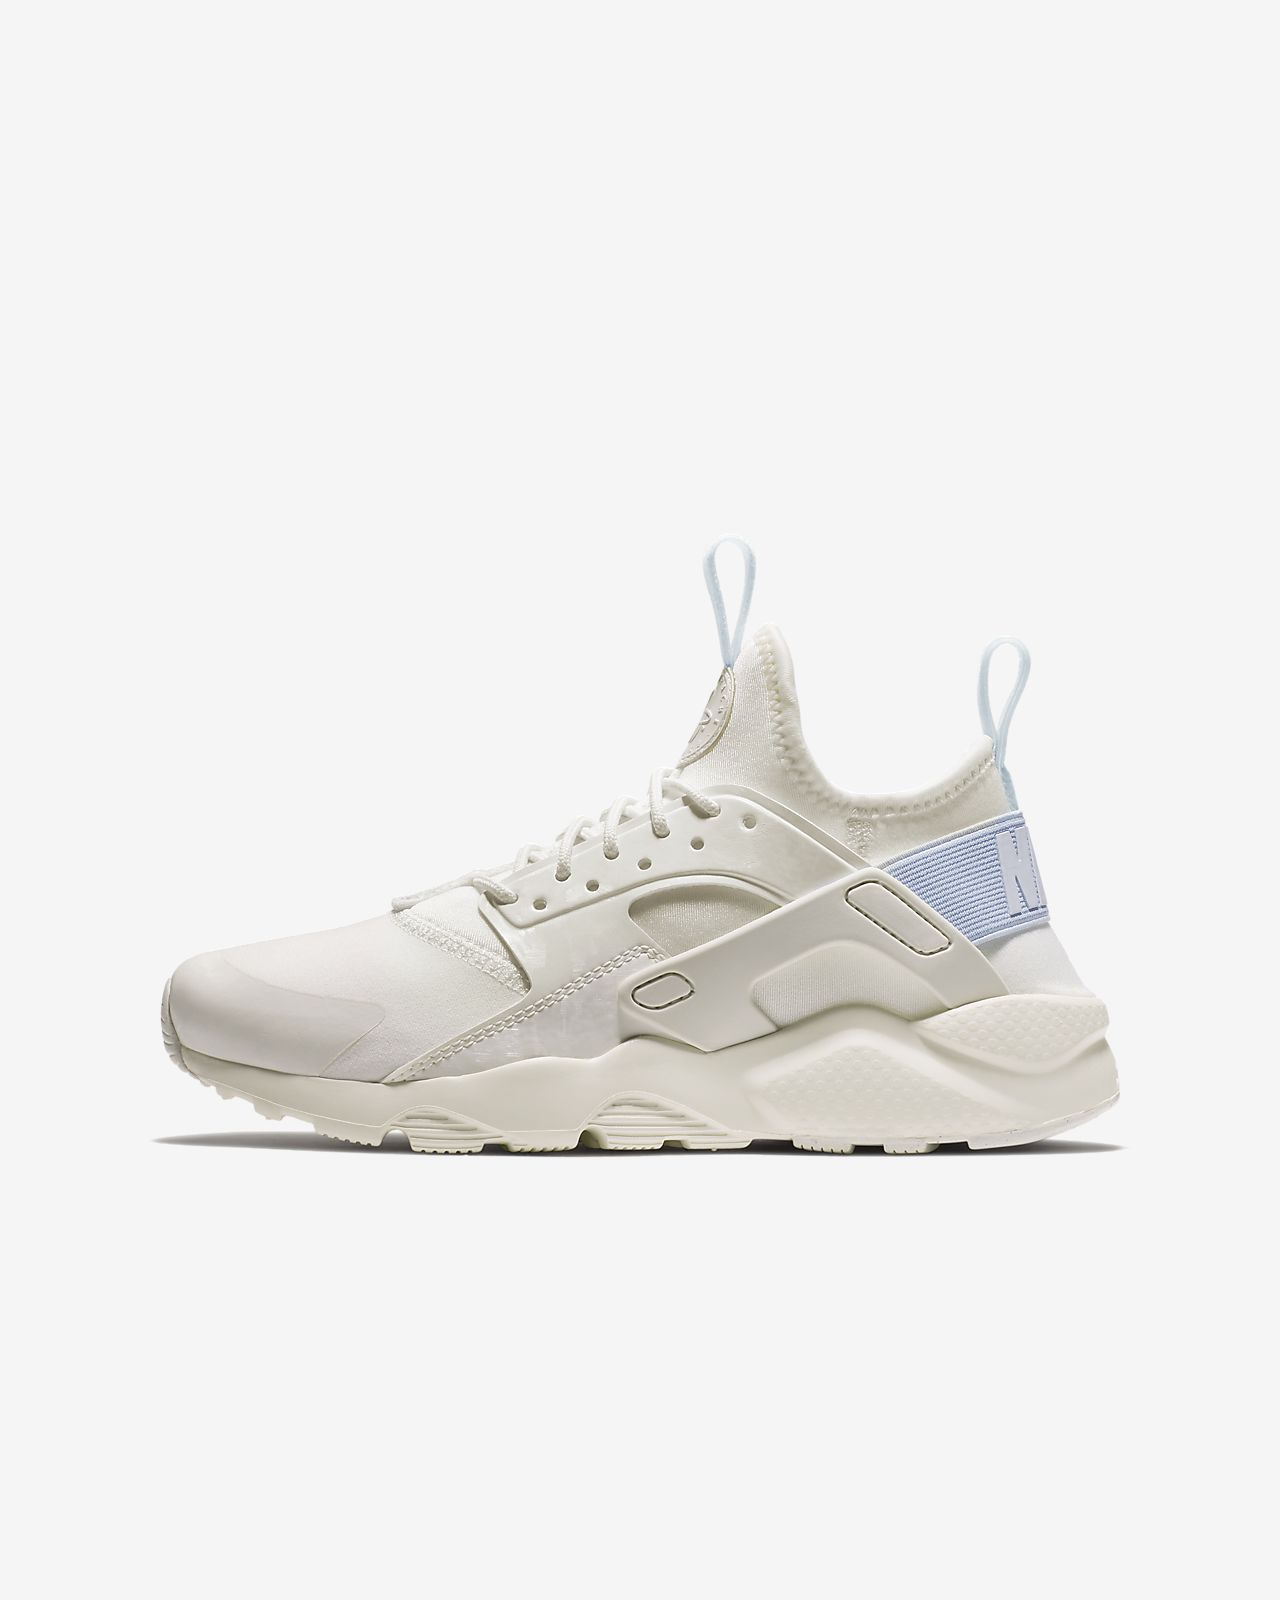 nike air huarache ultra men's shoe nz